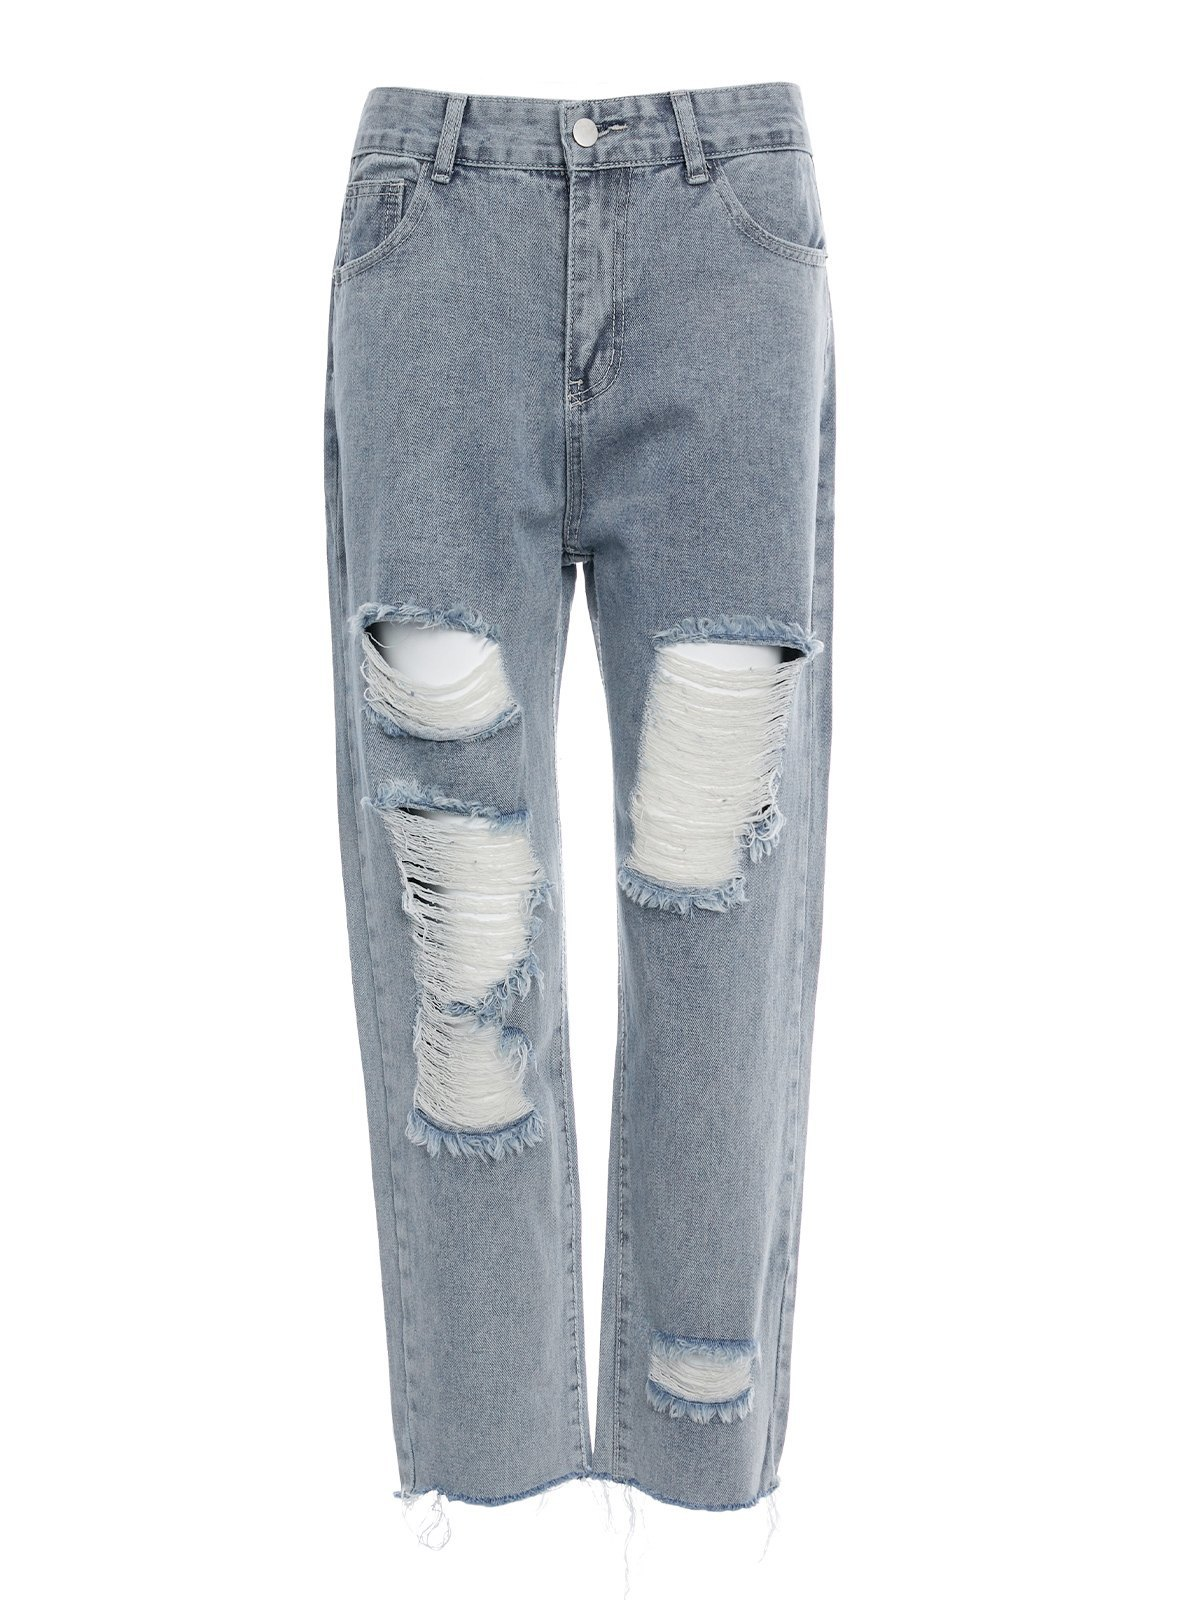 Vintage Extra Ripped Jeans -